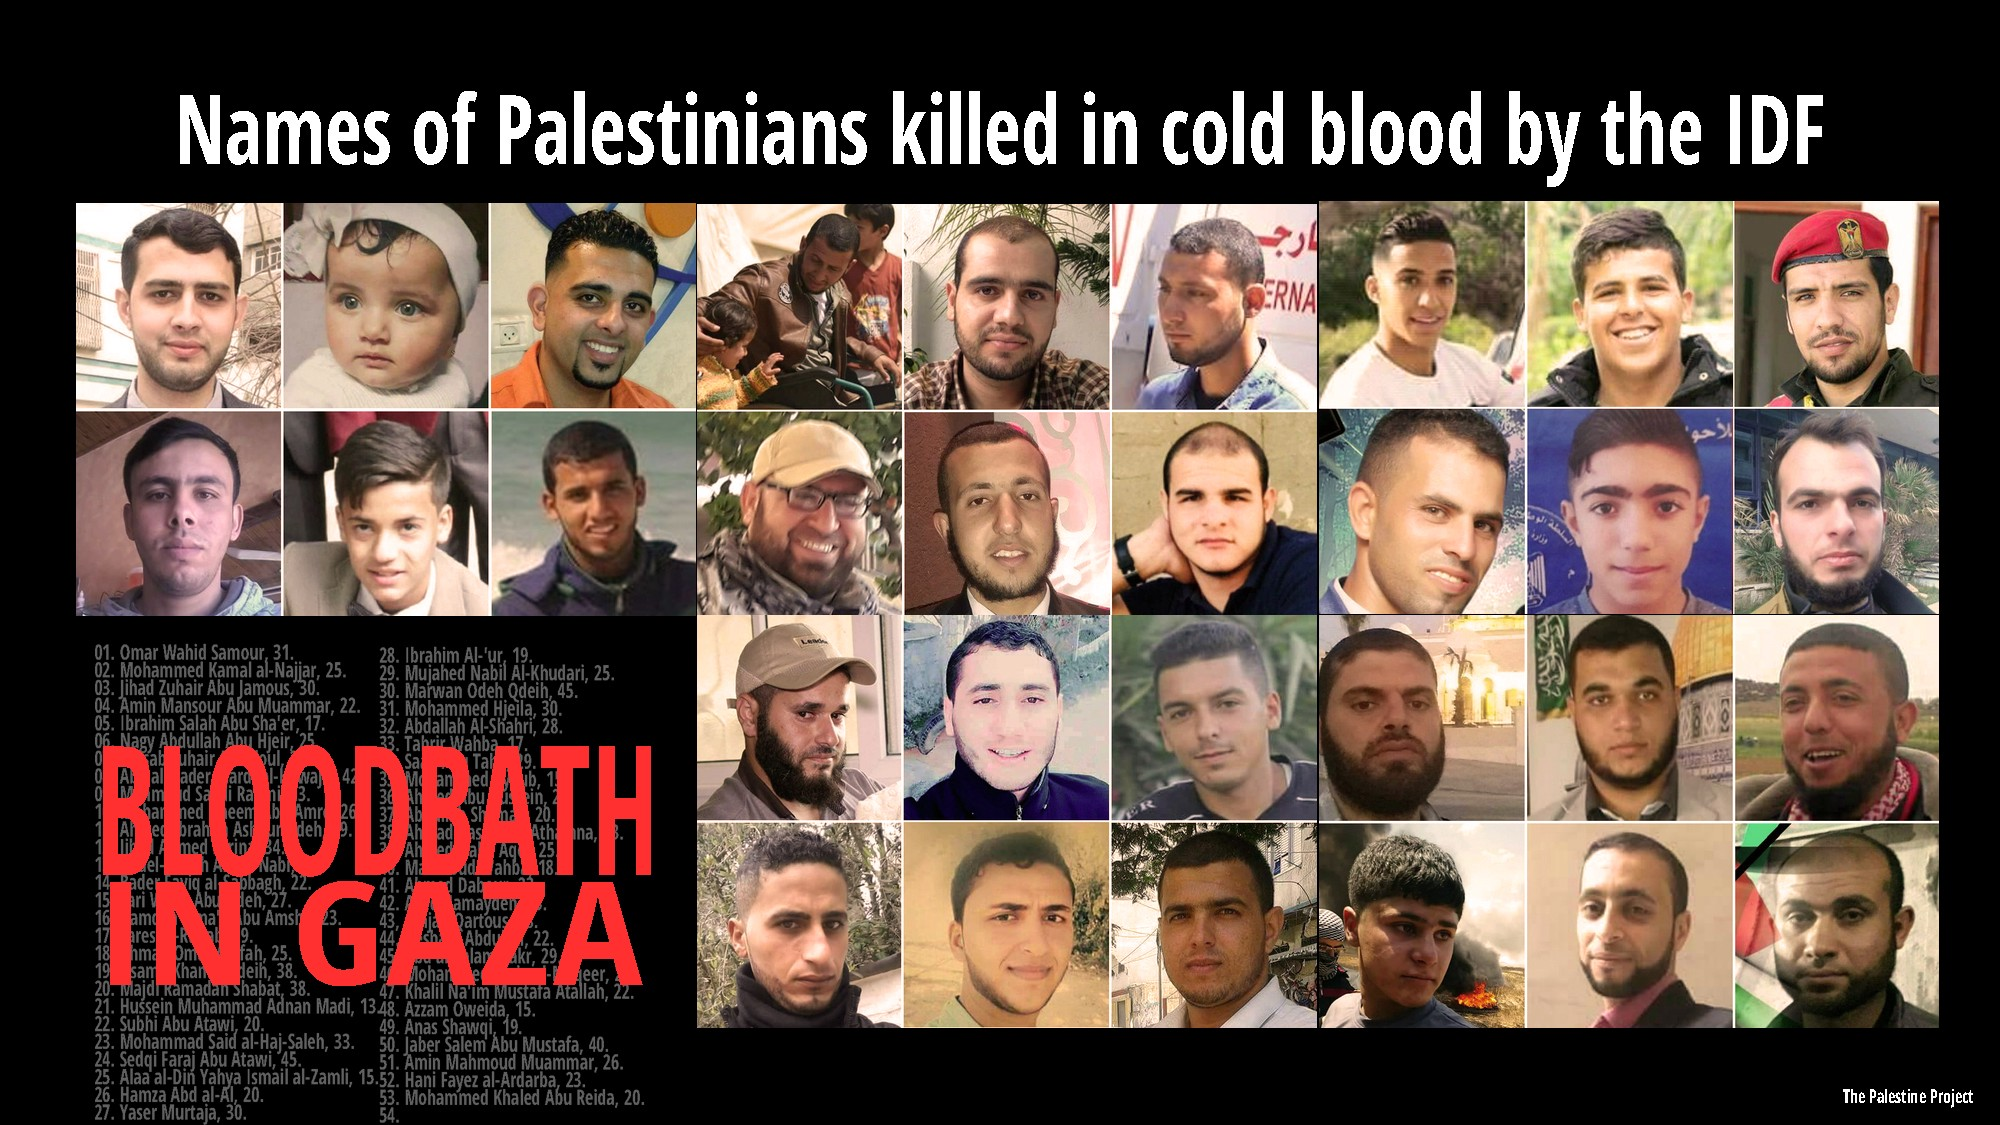 Names and ages of Palestinians killed by Israeli troops in Gaza